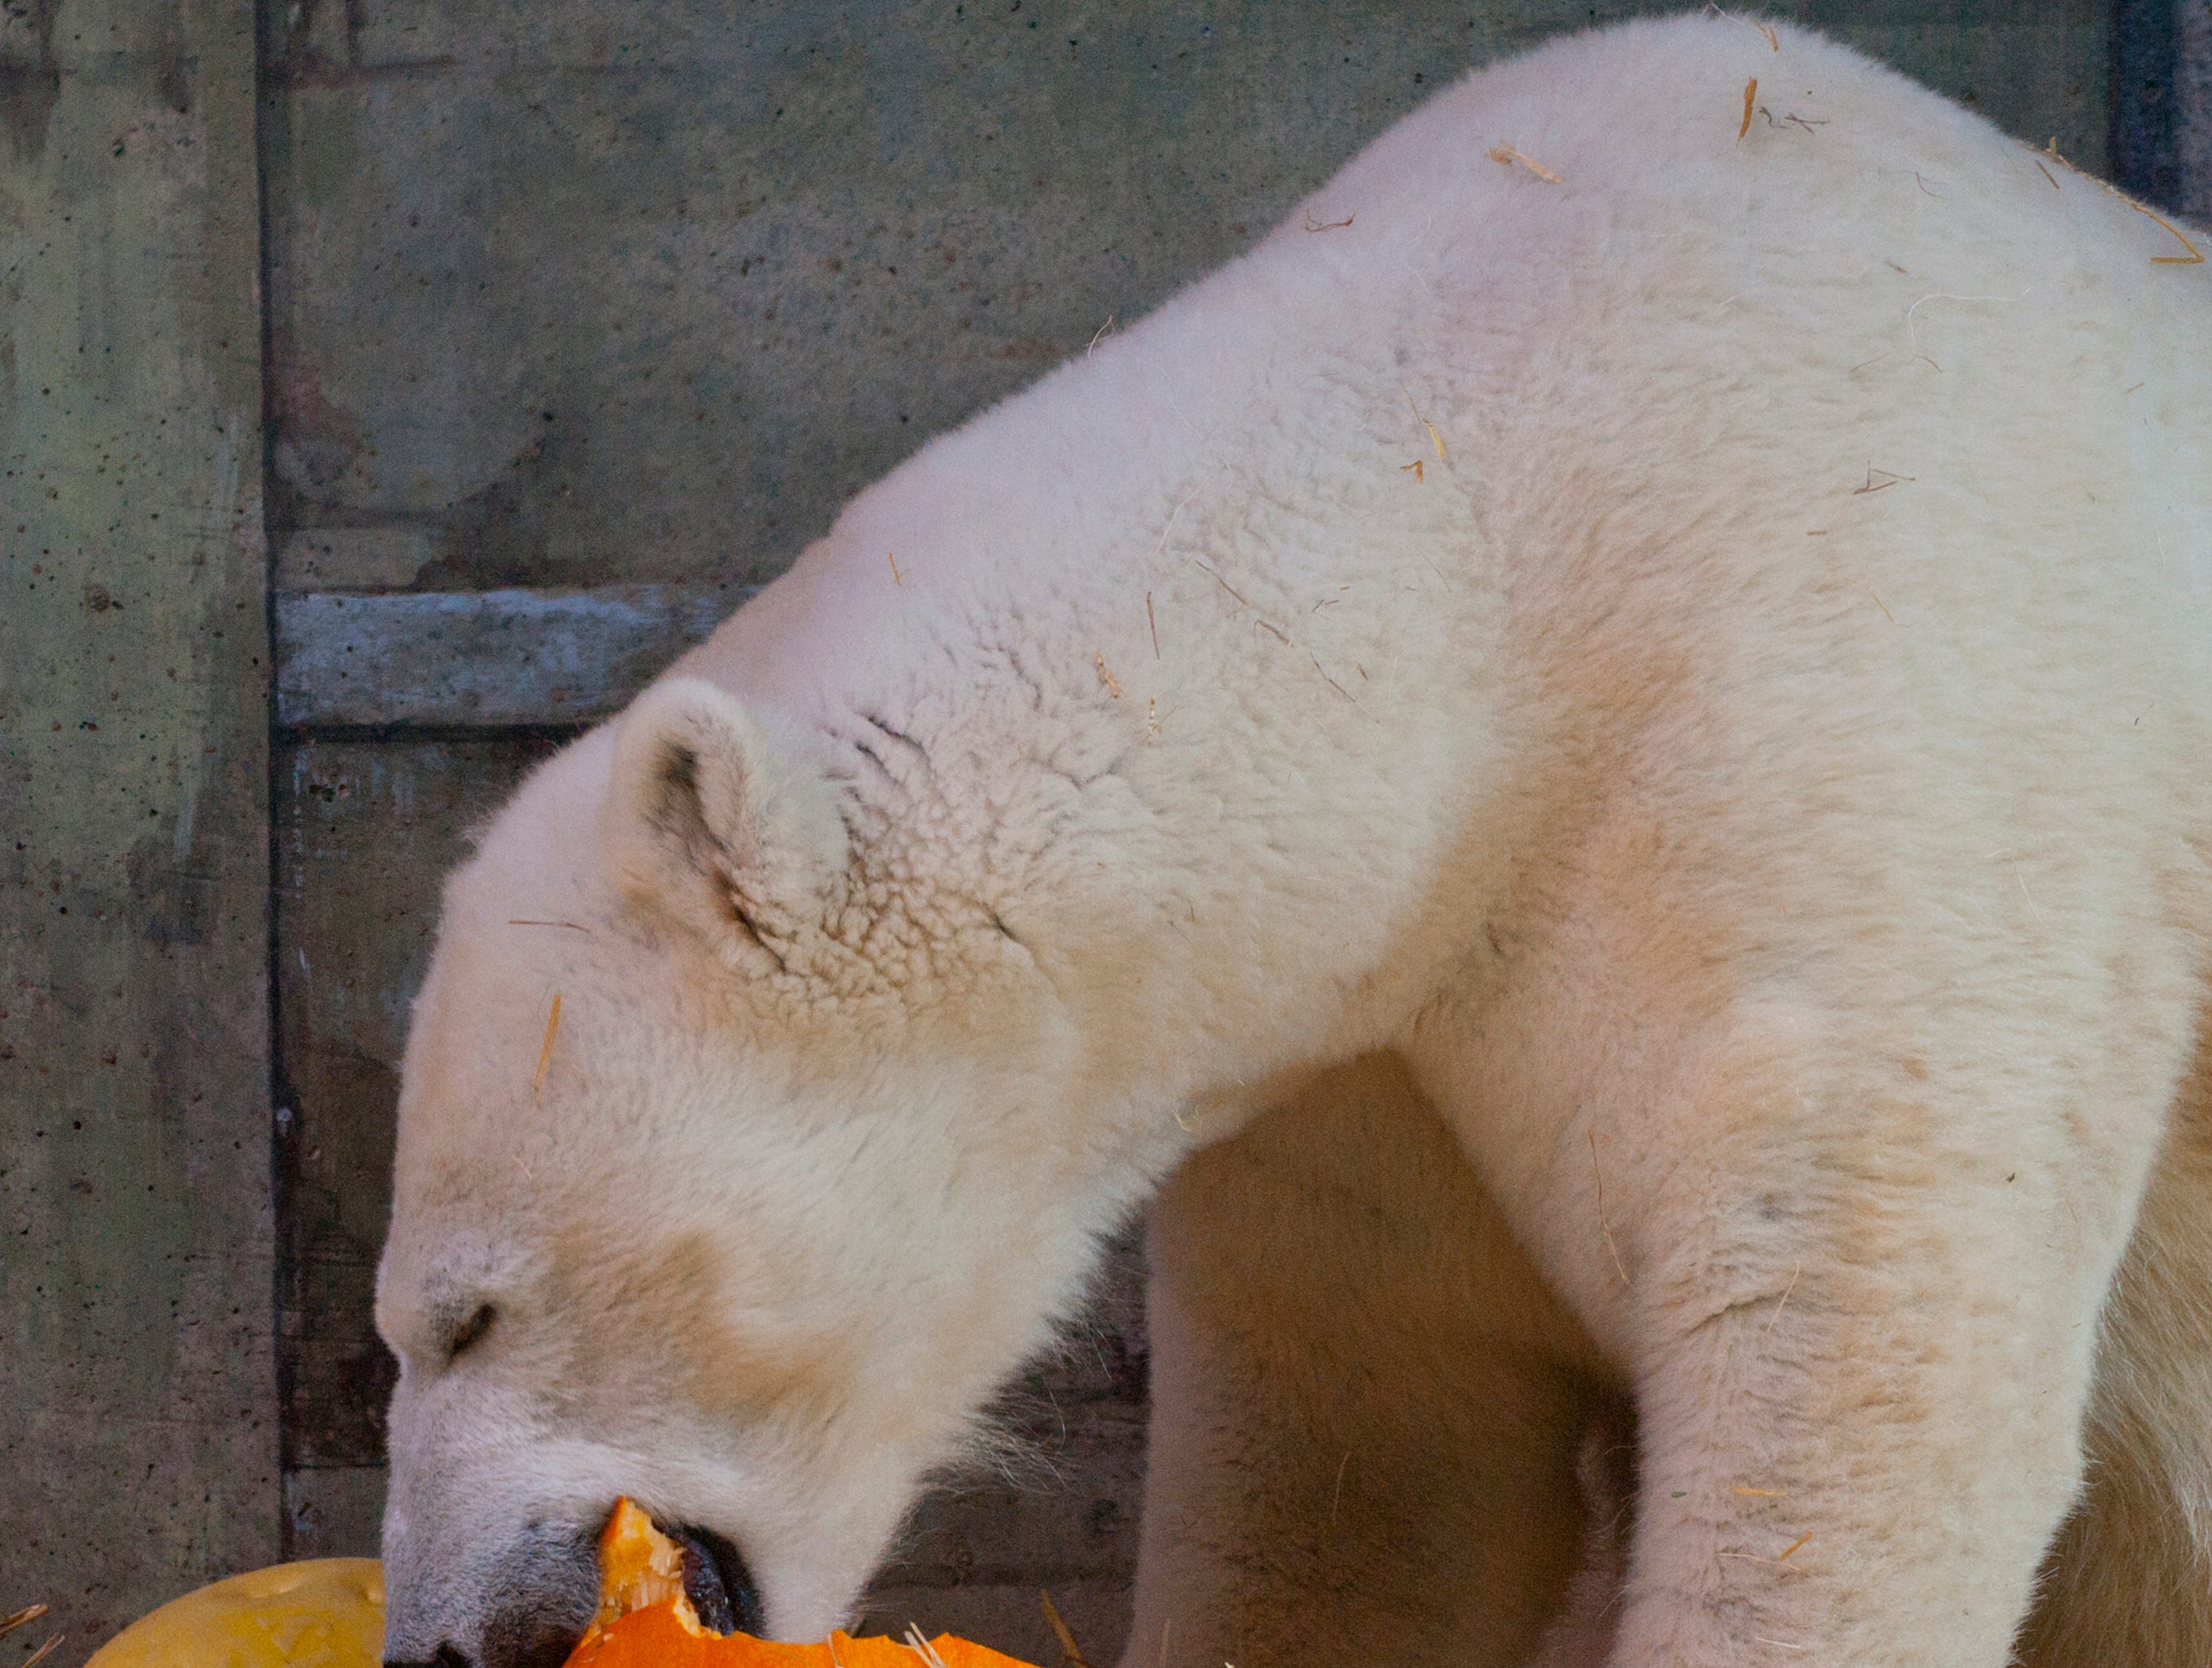 Qannik, a 7-year-old female polar bear, sinks her teeth into a pumpkin at the Louisville Zoo's annual pumpkin smash. The pumpkins being fed to the animals are from the zoo's Halloween event. November 04, 2018